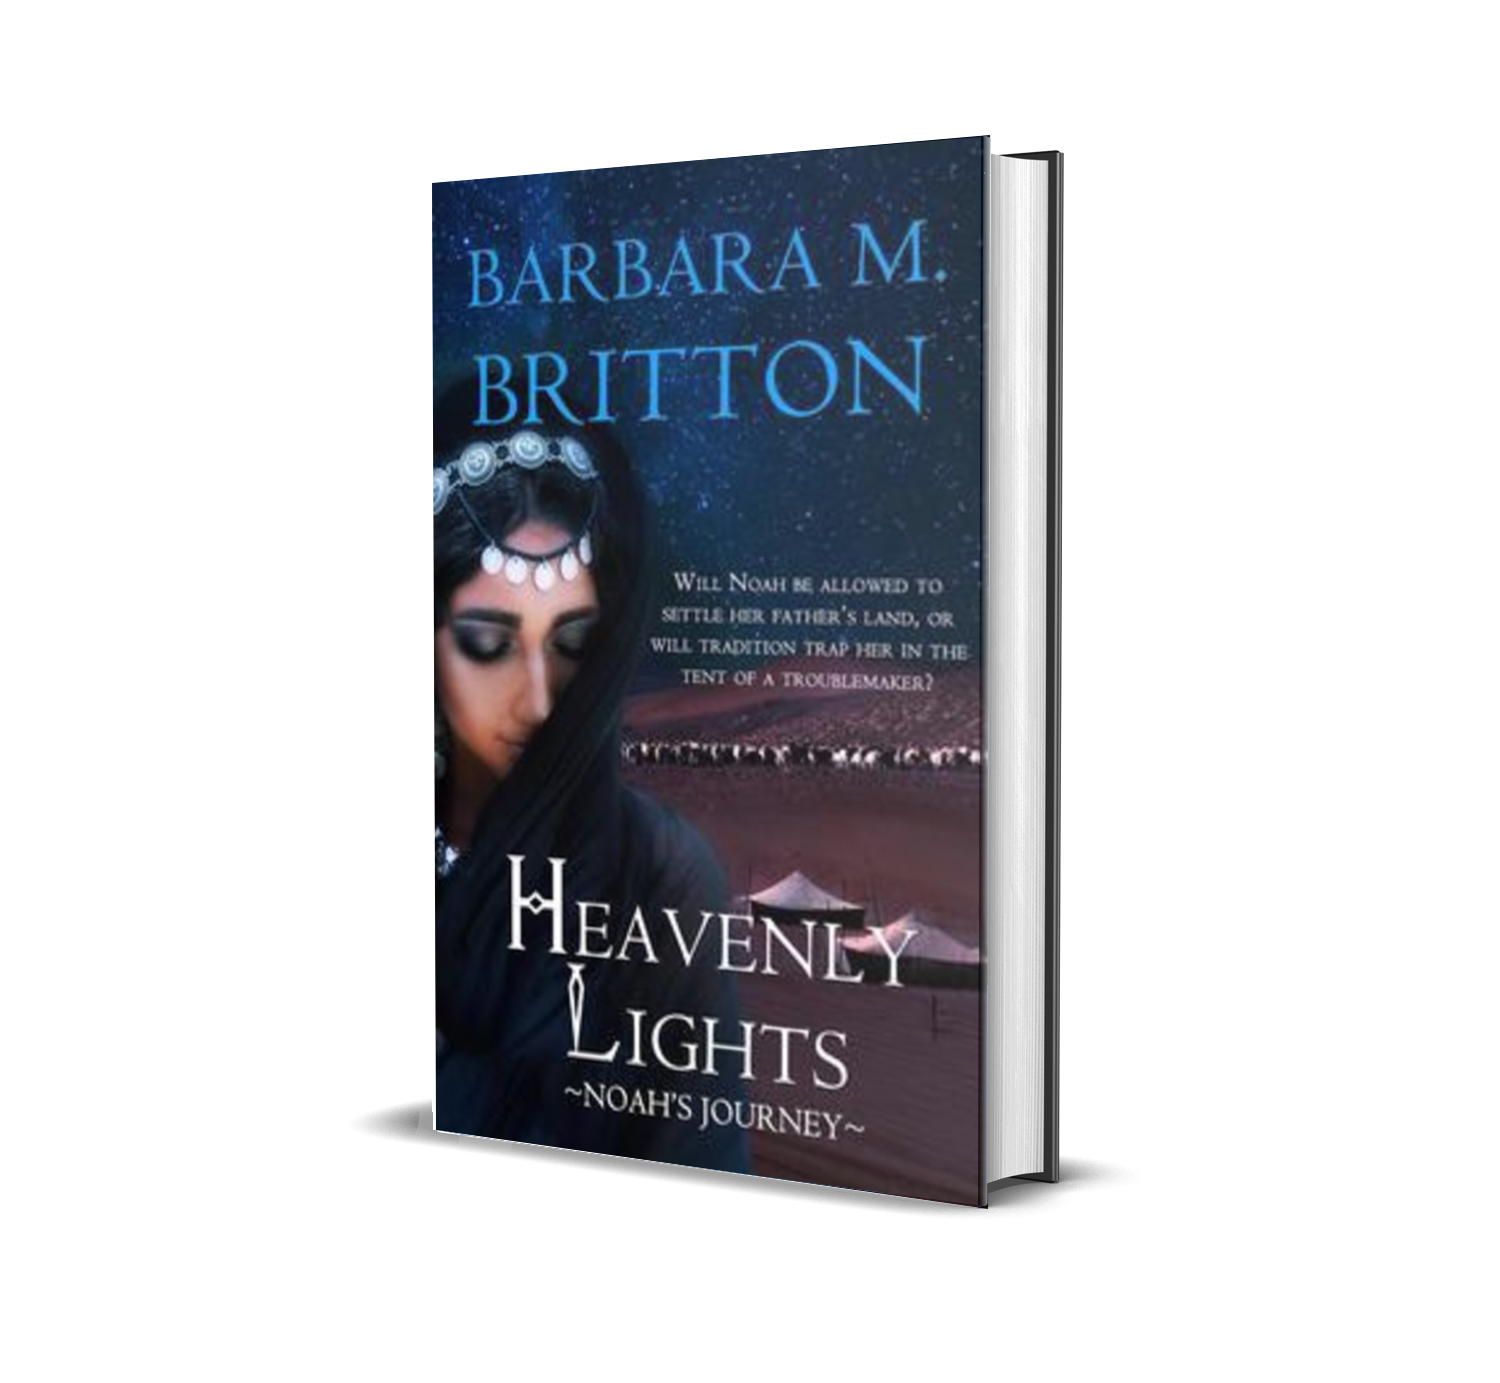 Heavenly Lights: Noah's Journey by Barbara M. Britton